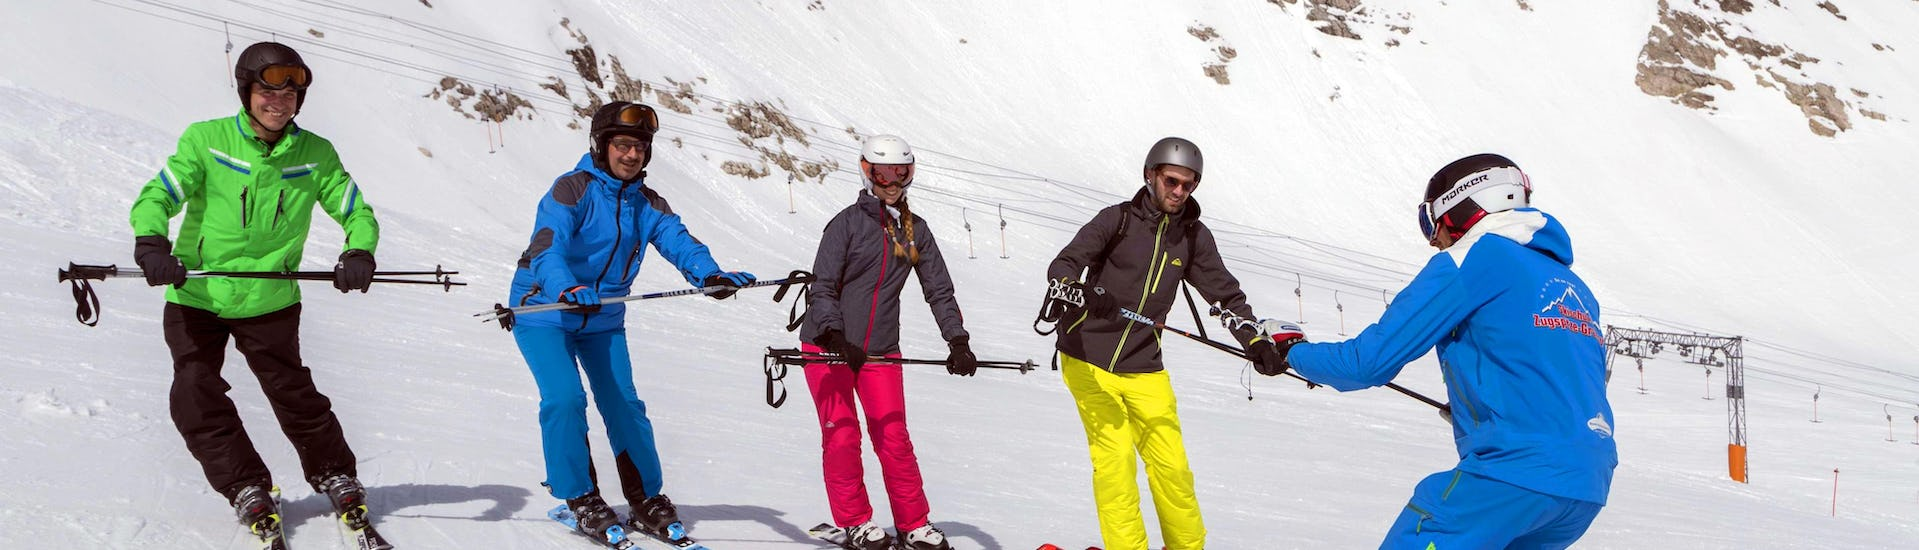 Ski instructor explains to the course participants how to warm up during the Ski Lessons for Adults - All Levels with the ski school Skischule Zugspitze-Grainau.